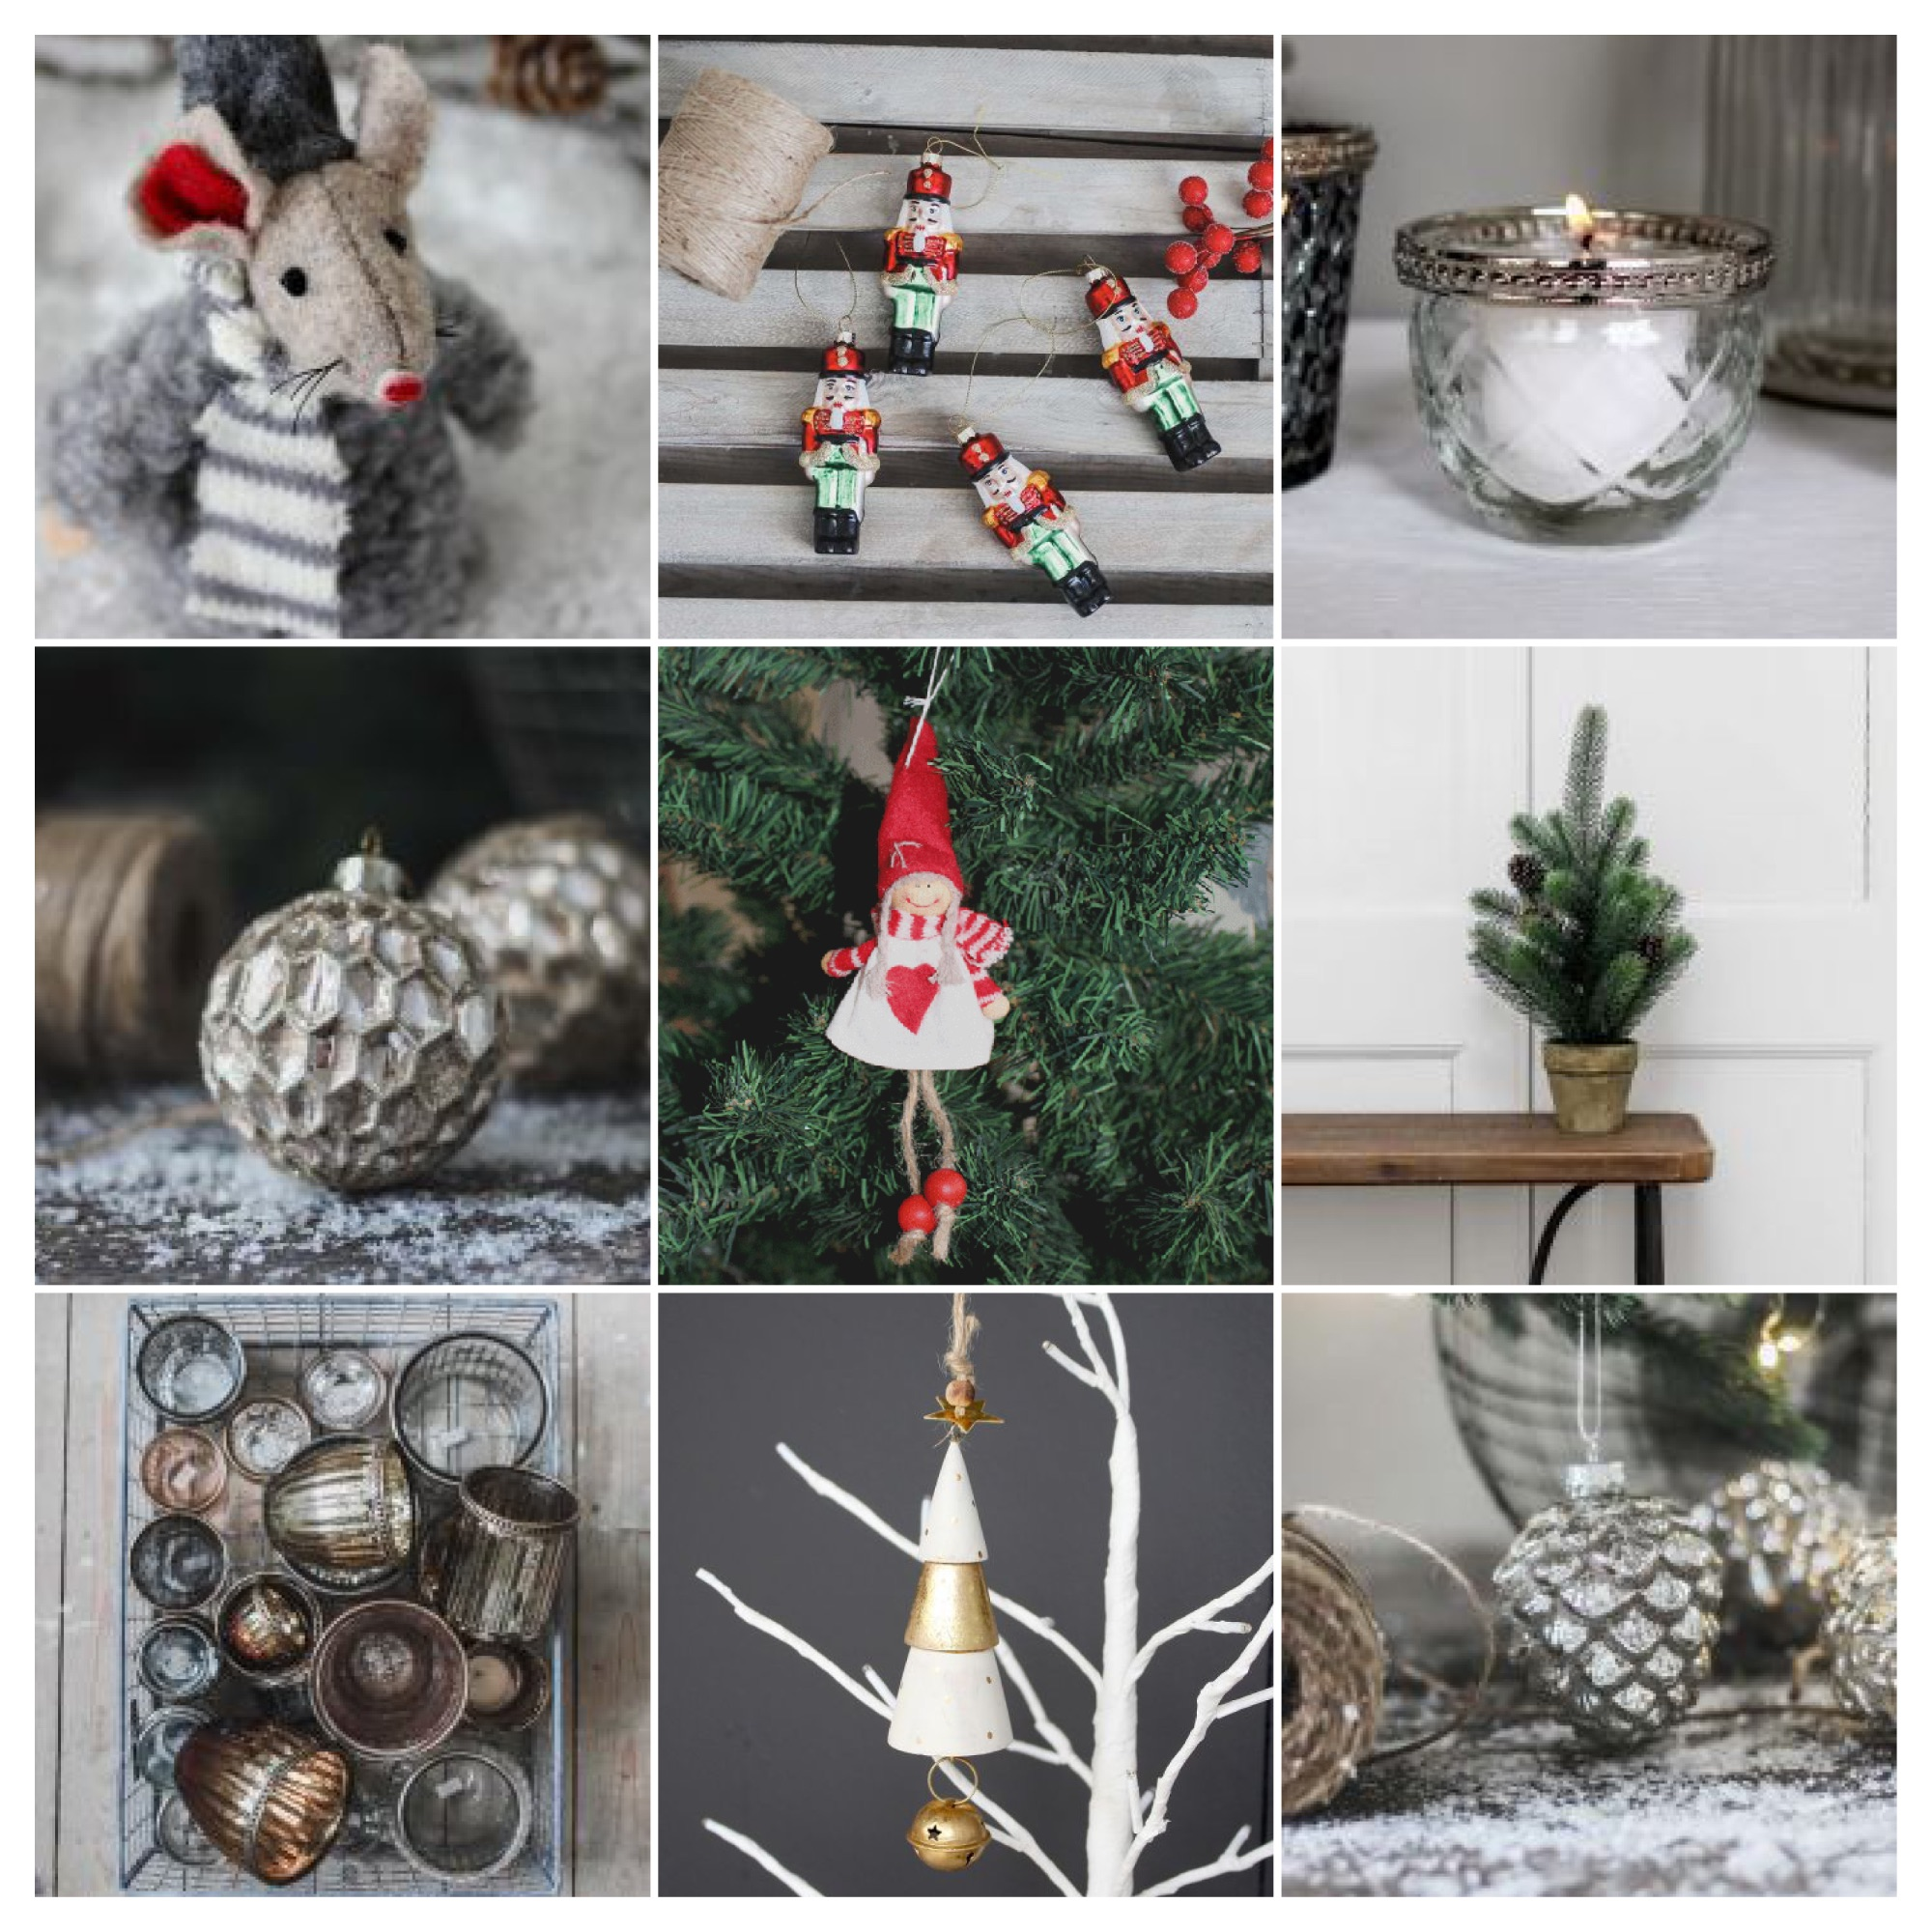 biggie best christmas decorations,red and  whits christmas decorartions,scandi christmas decorations,country christmas decorations,toy soldier christmas decorations,